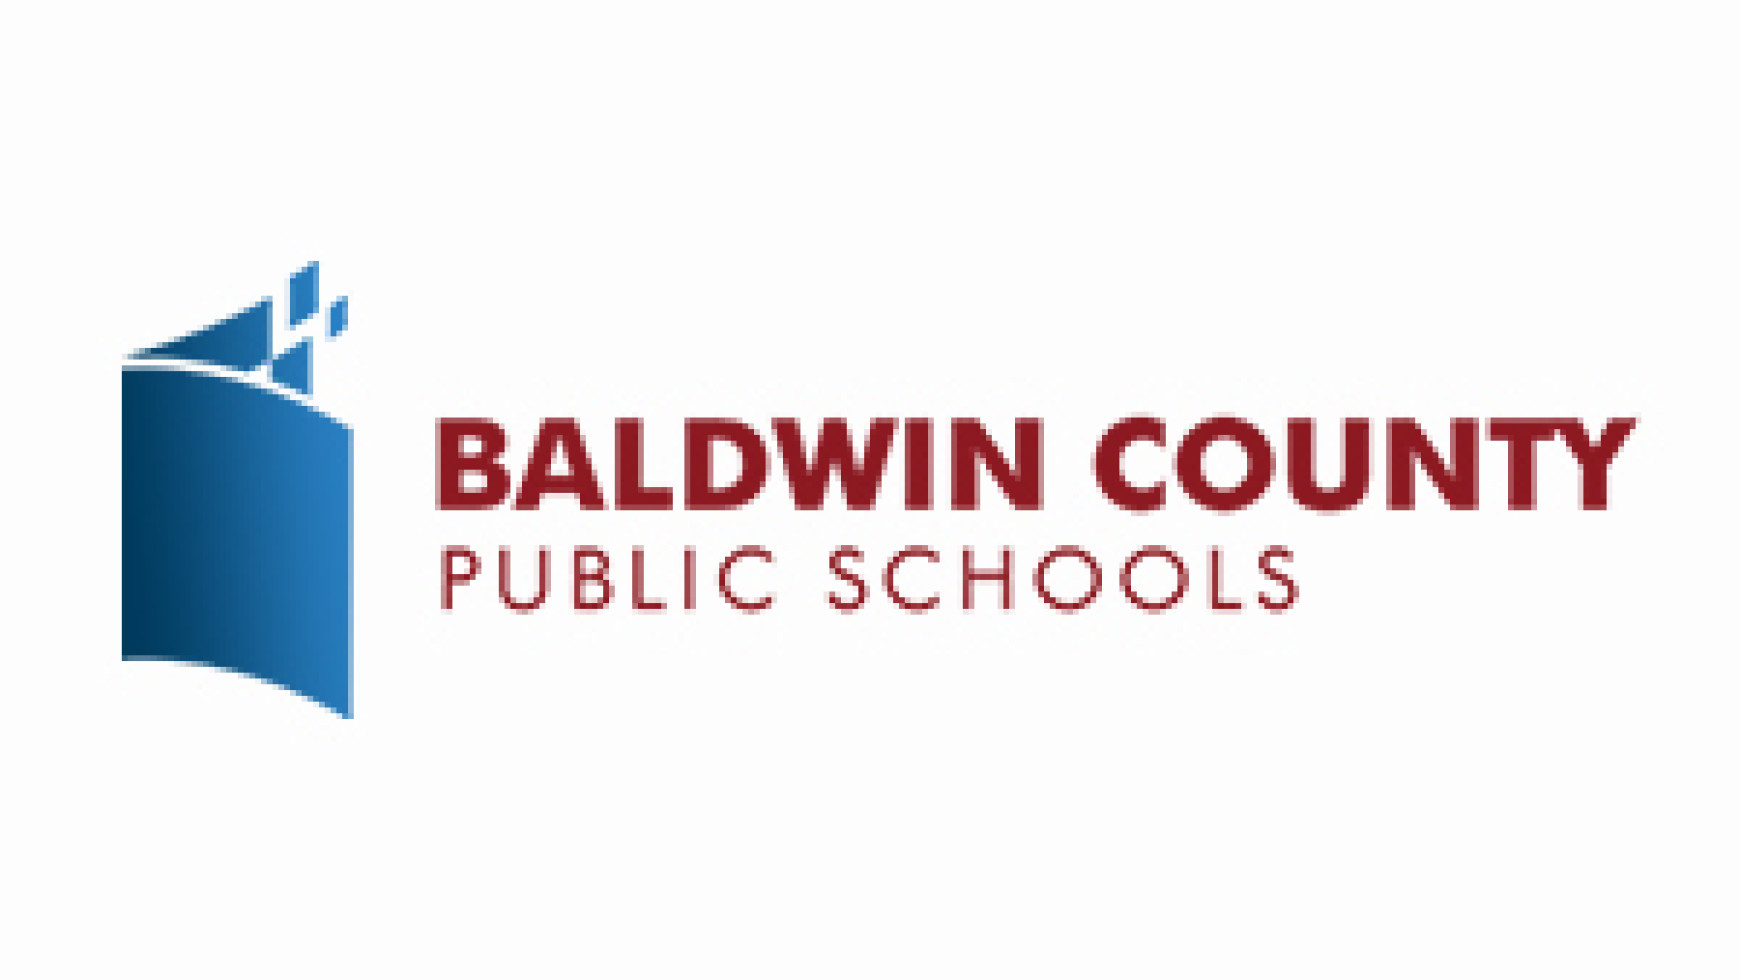 Baldwin County Public Schools Save Tax Payers $10.43 million dollars